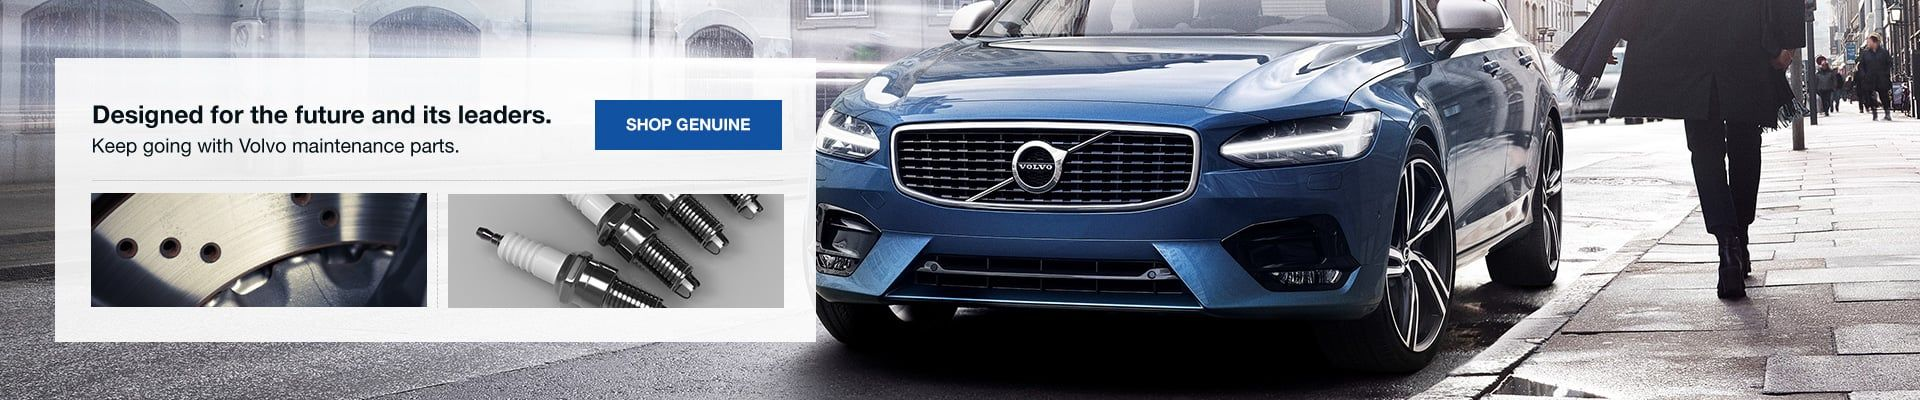 Volvo Maintenance Parts